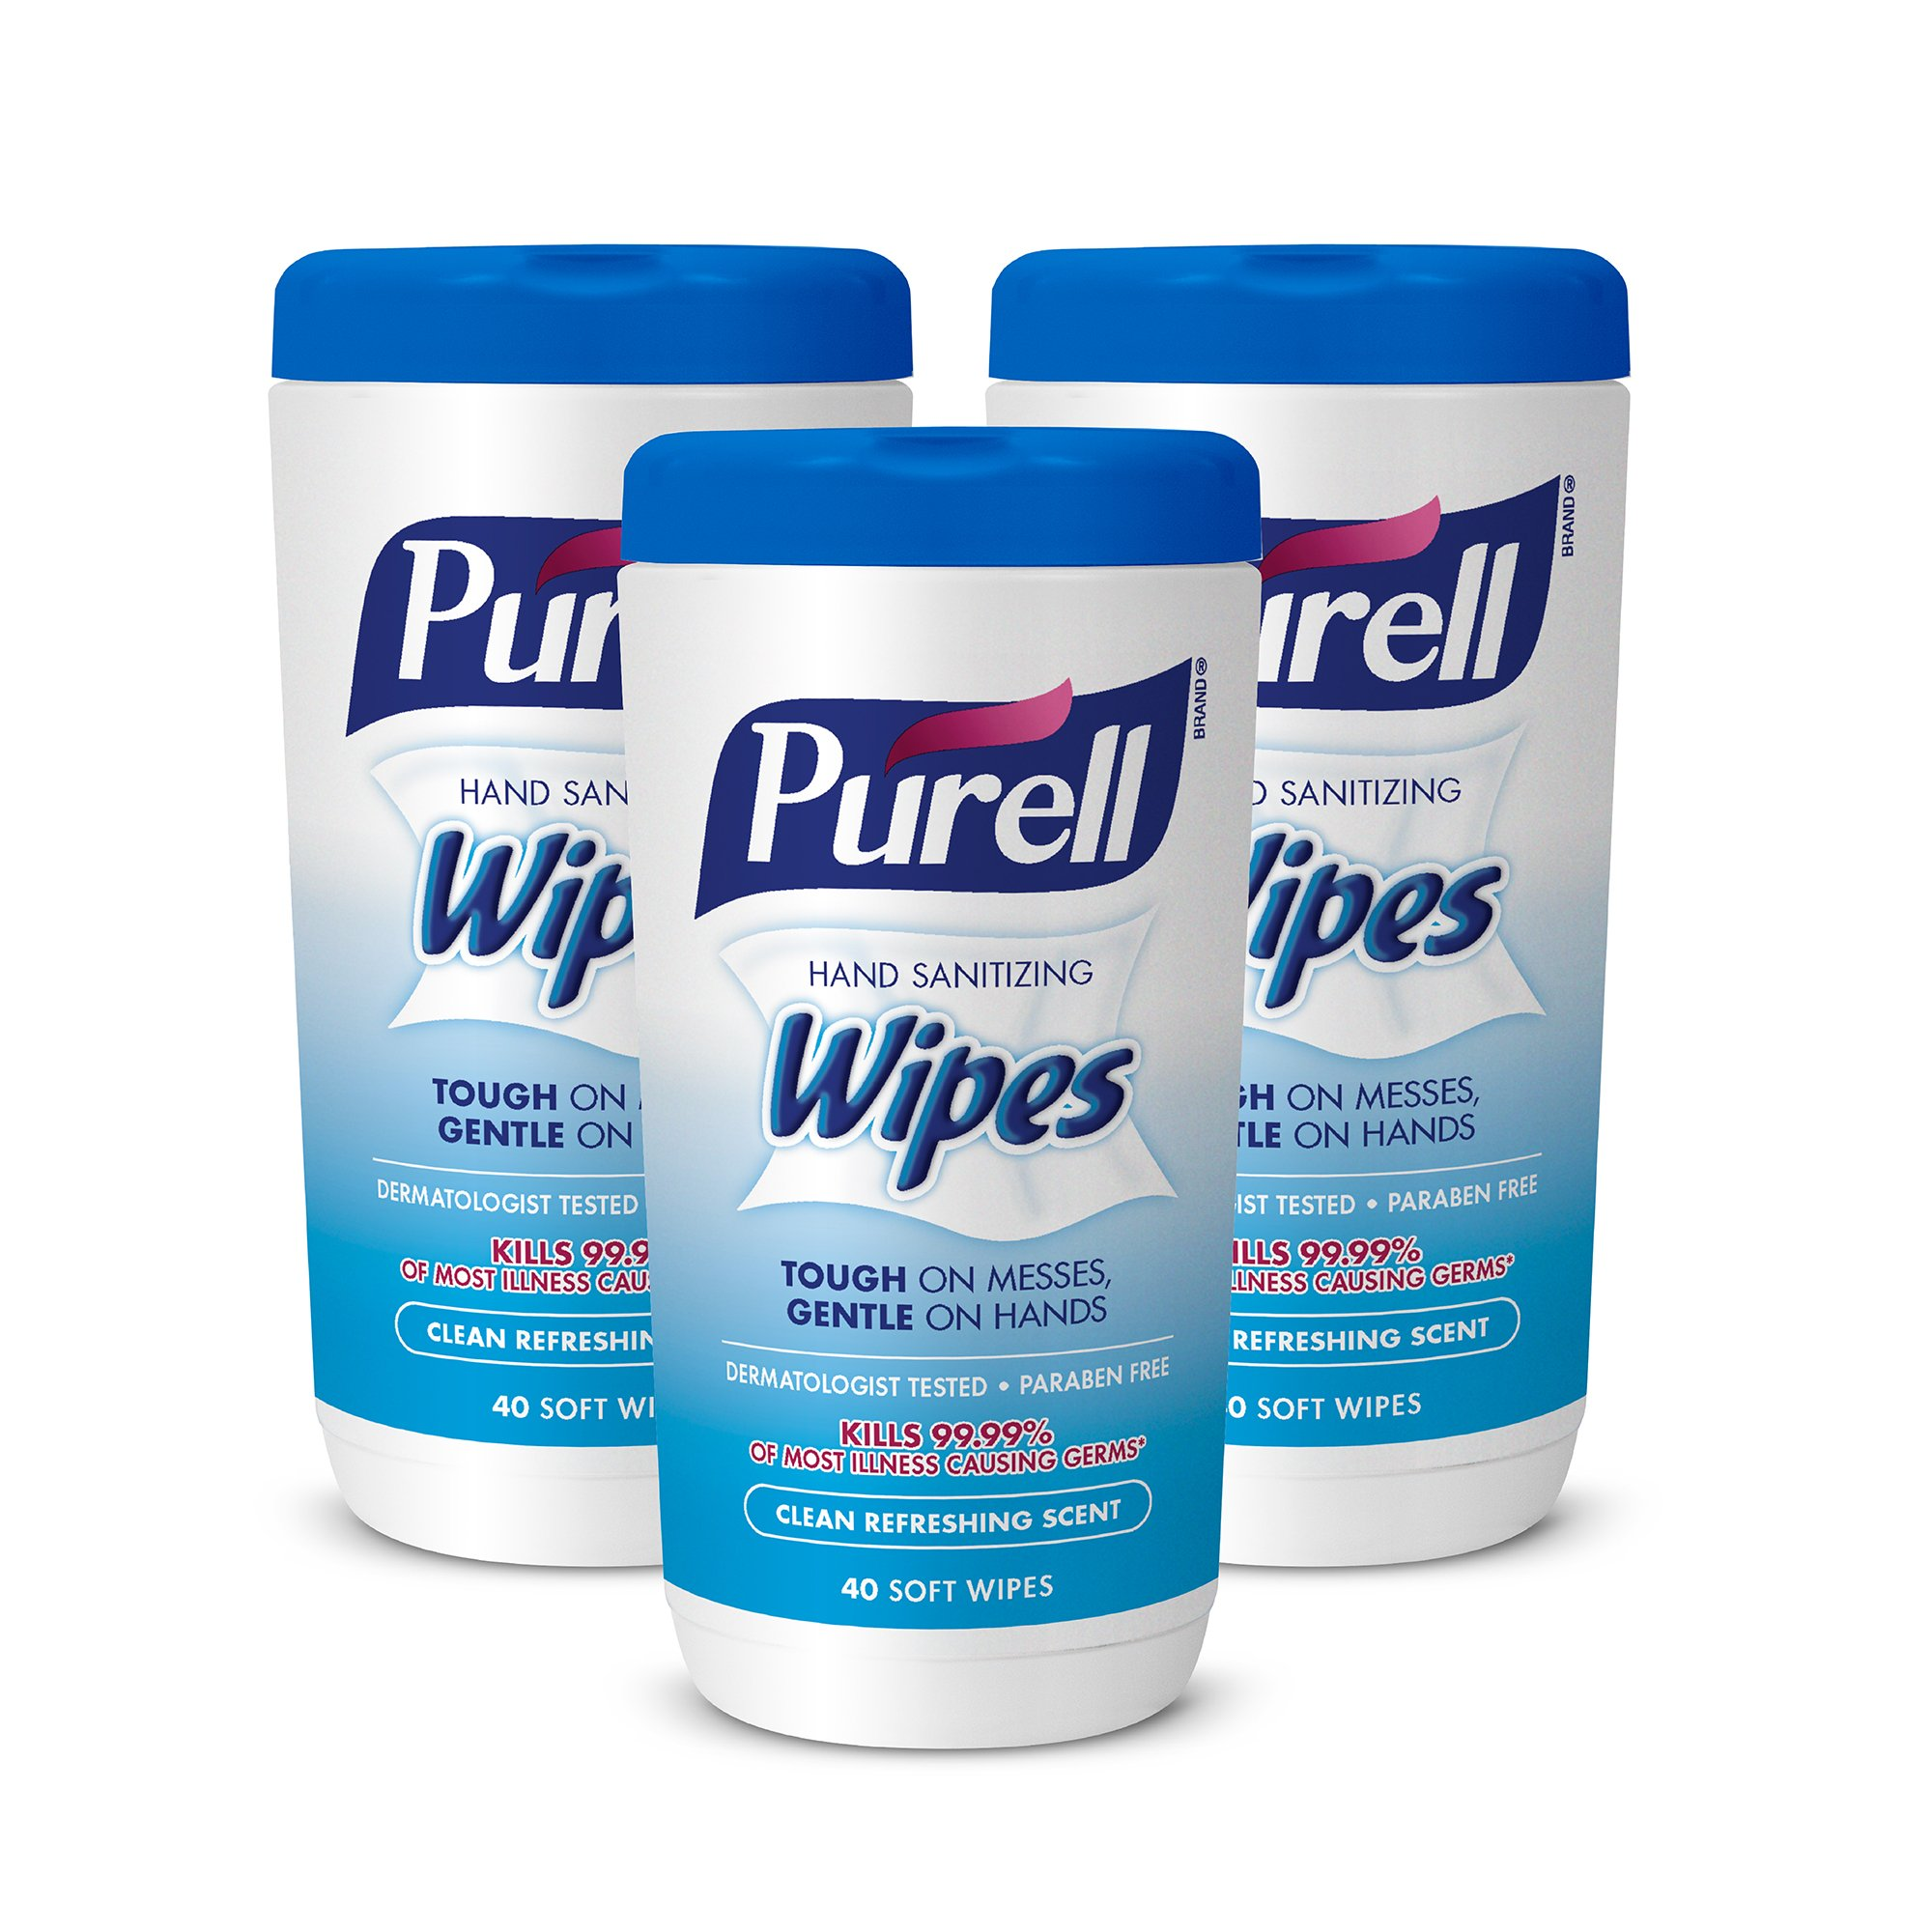 PURELL Hand Sanitizing Wipes - Clean Refreshing Scent, Non-Alcohol Wipes, 40 Count Canister (Case of 3) - 9120-03-EC